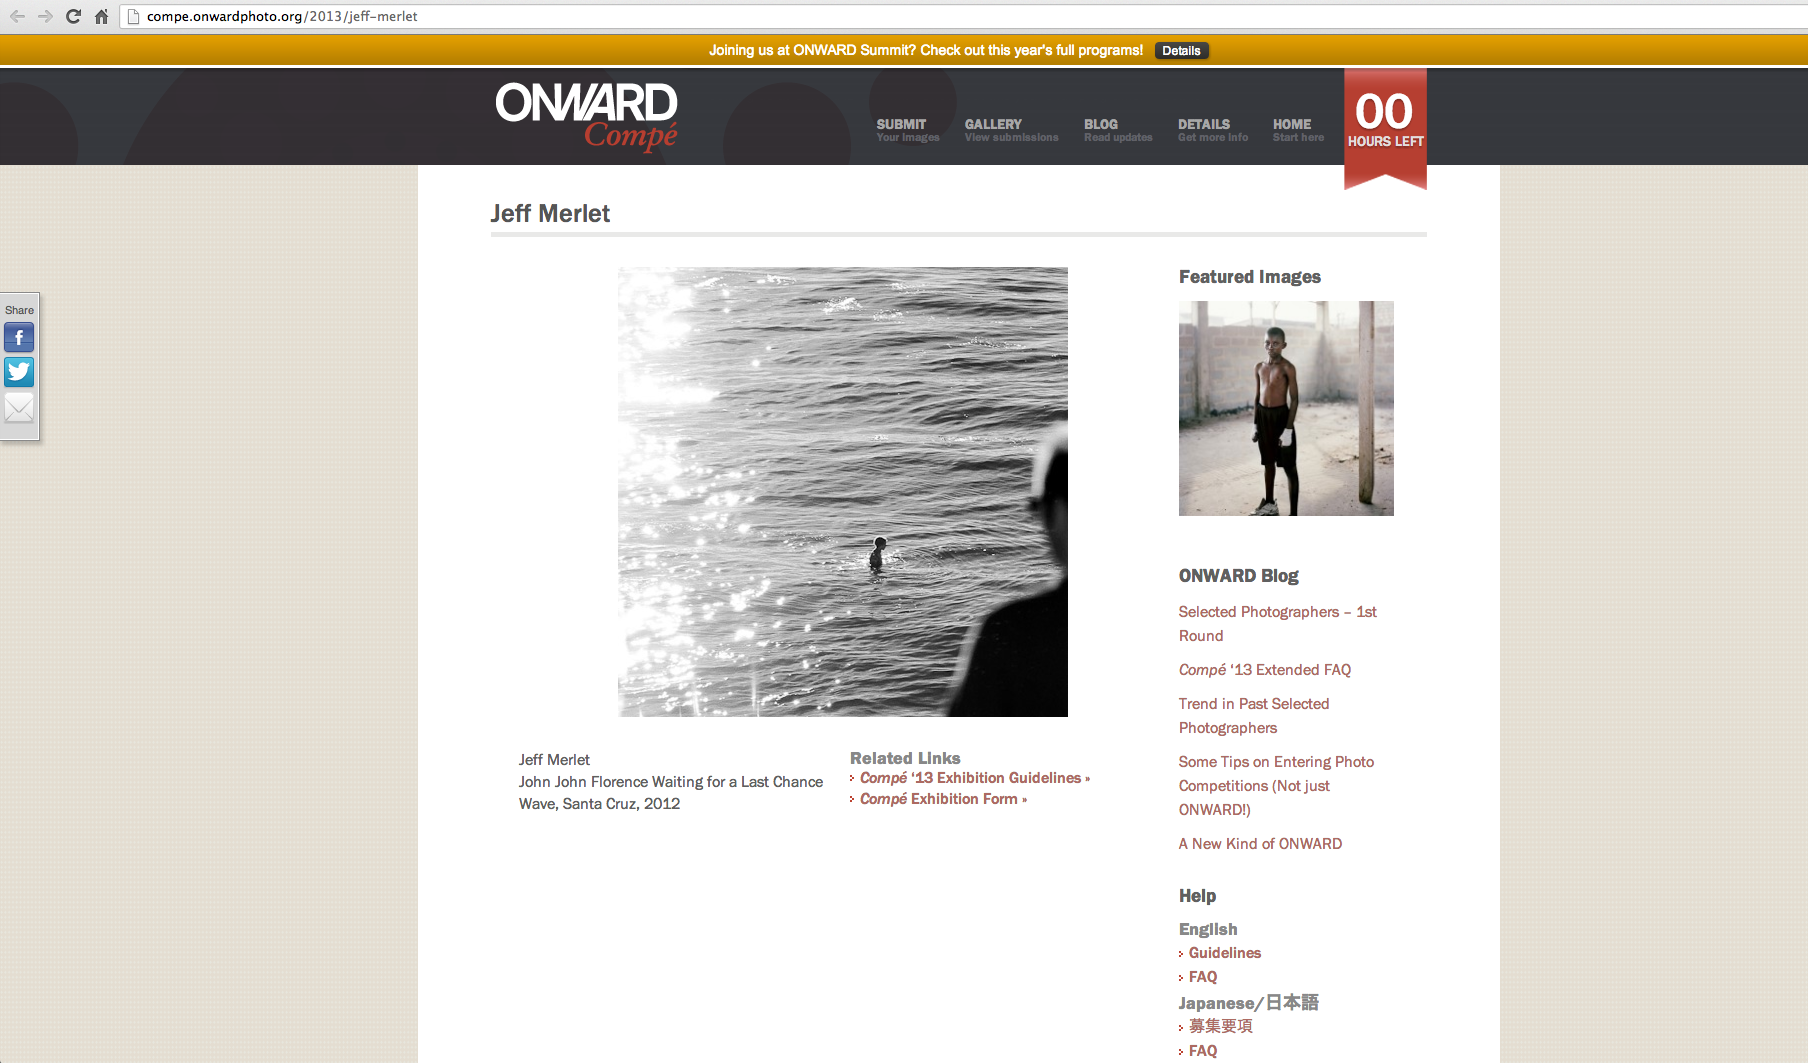 screenshot-onward-compe-2013-finalist-entry.png